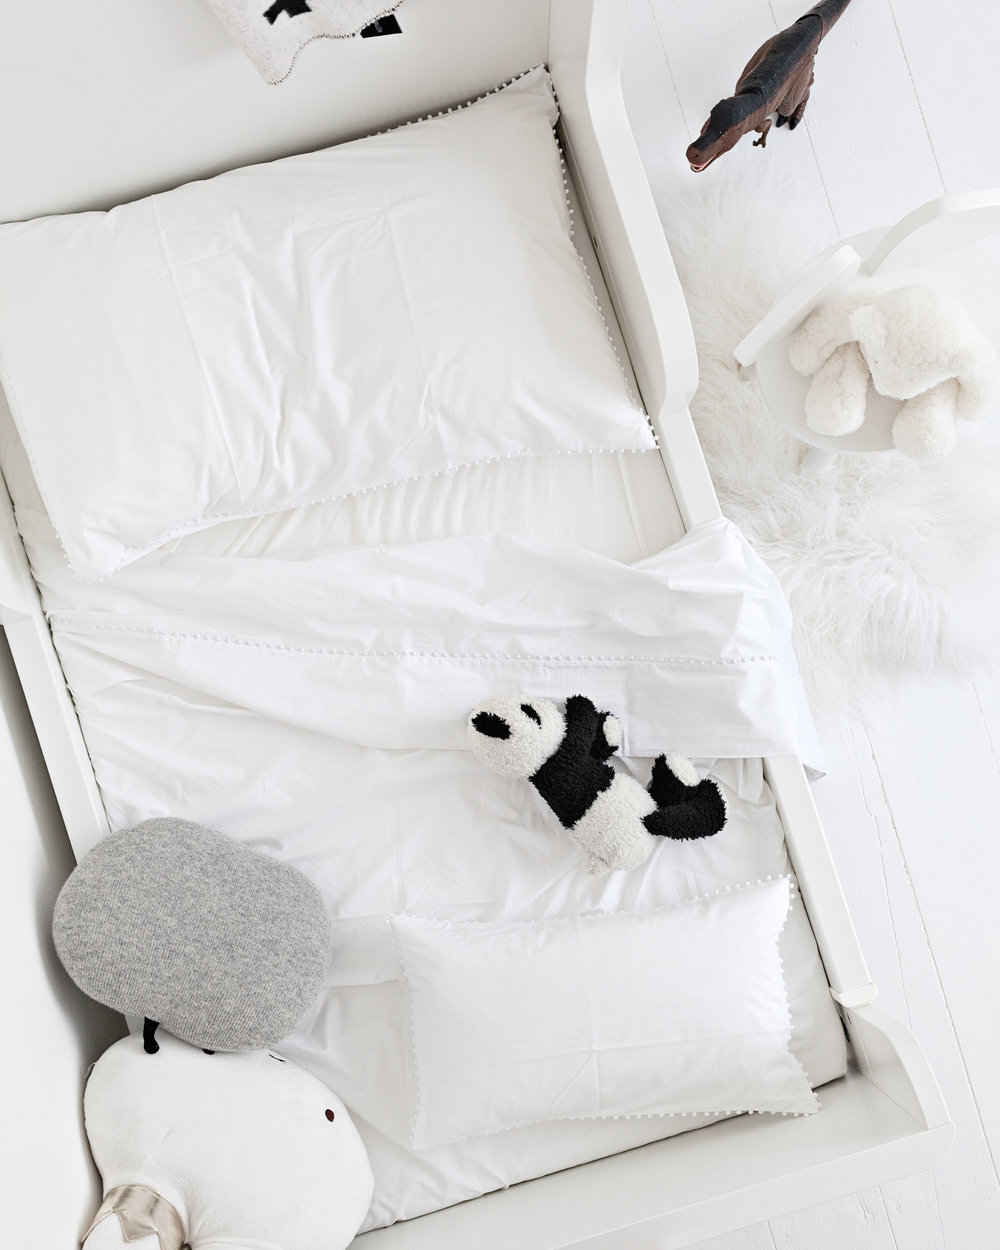 Bed Linens, Vintage Panda, Vintage White Bear from The White Company | Tibetan Sheepskin Rug from Milabert